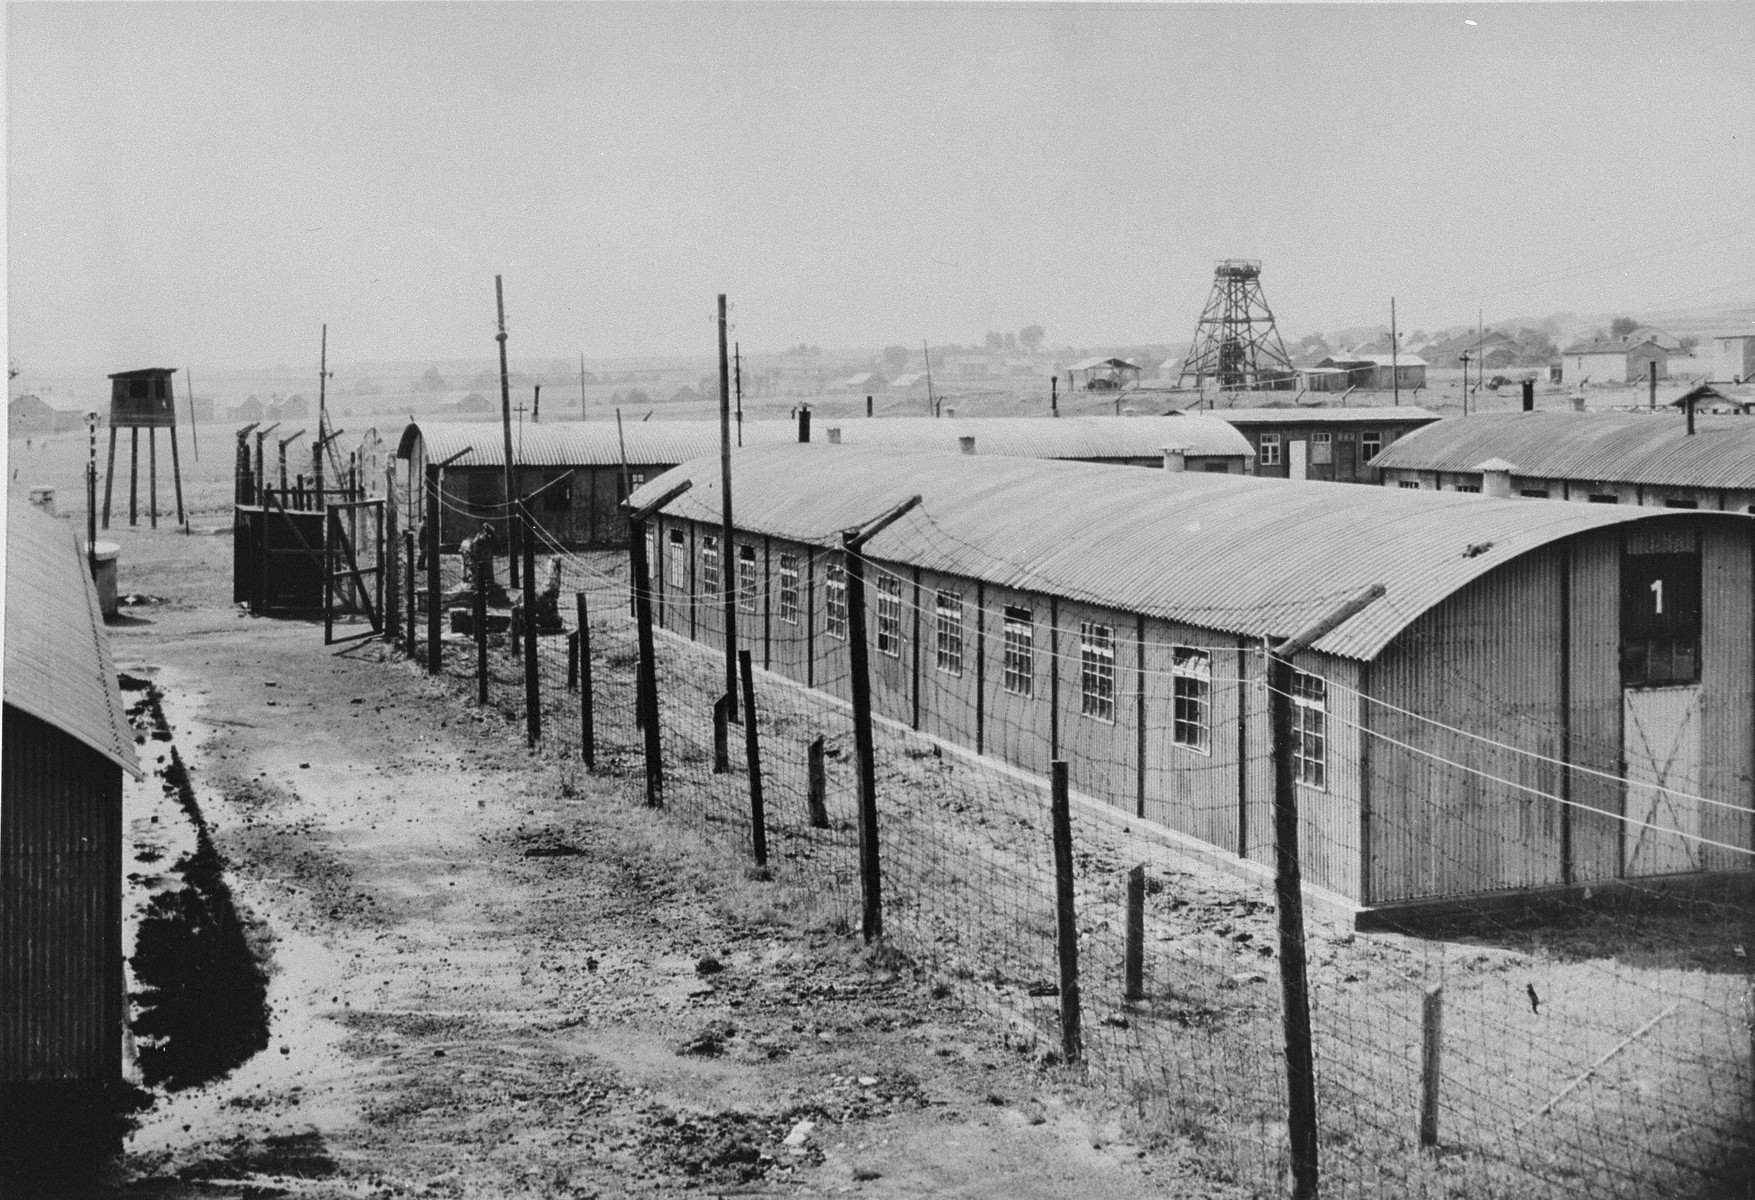 View of Trzebinia sub-camp of Auschwitz from the south.